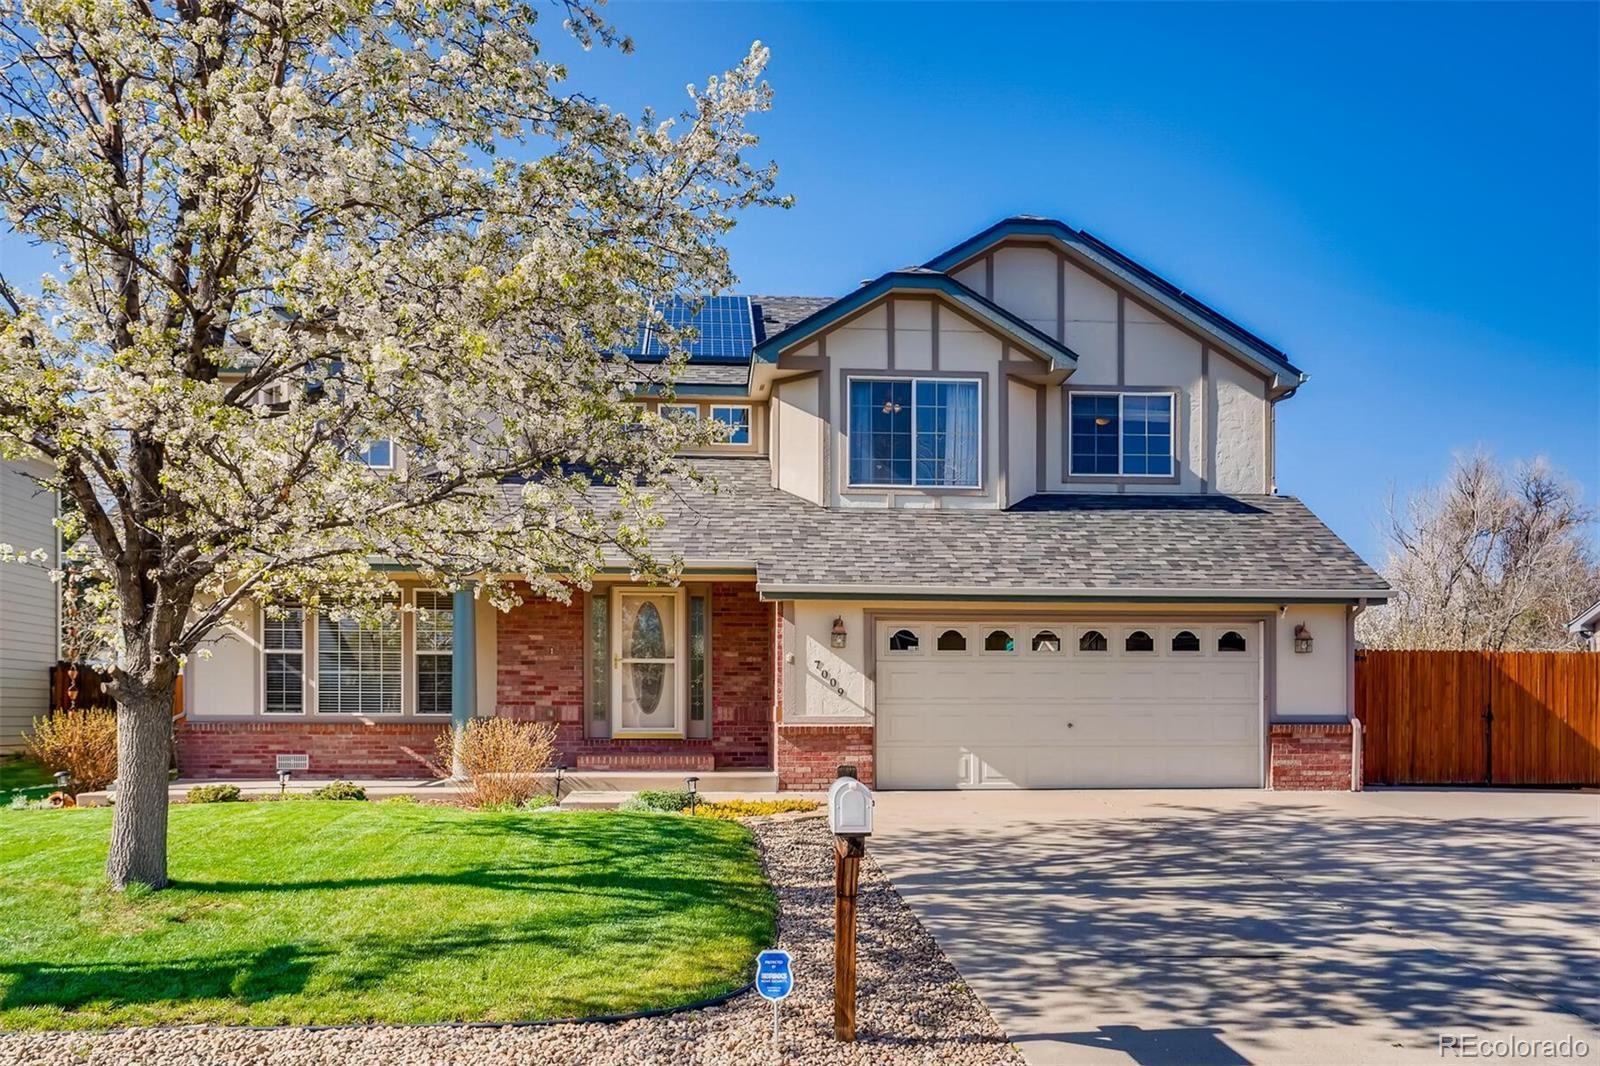 Photo of 7009 W 25th Place, Lakewood, CO 80214 (MLS # 7093473)